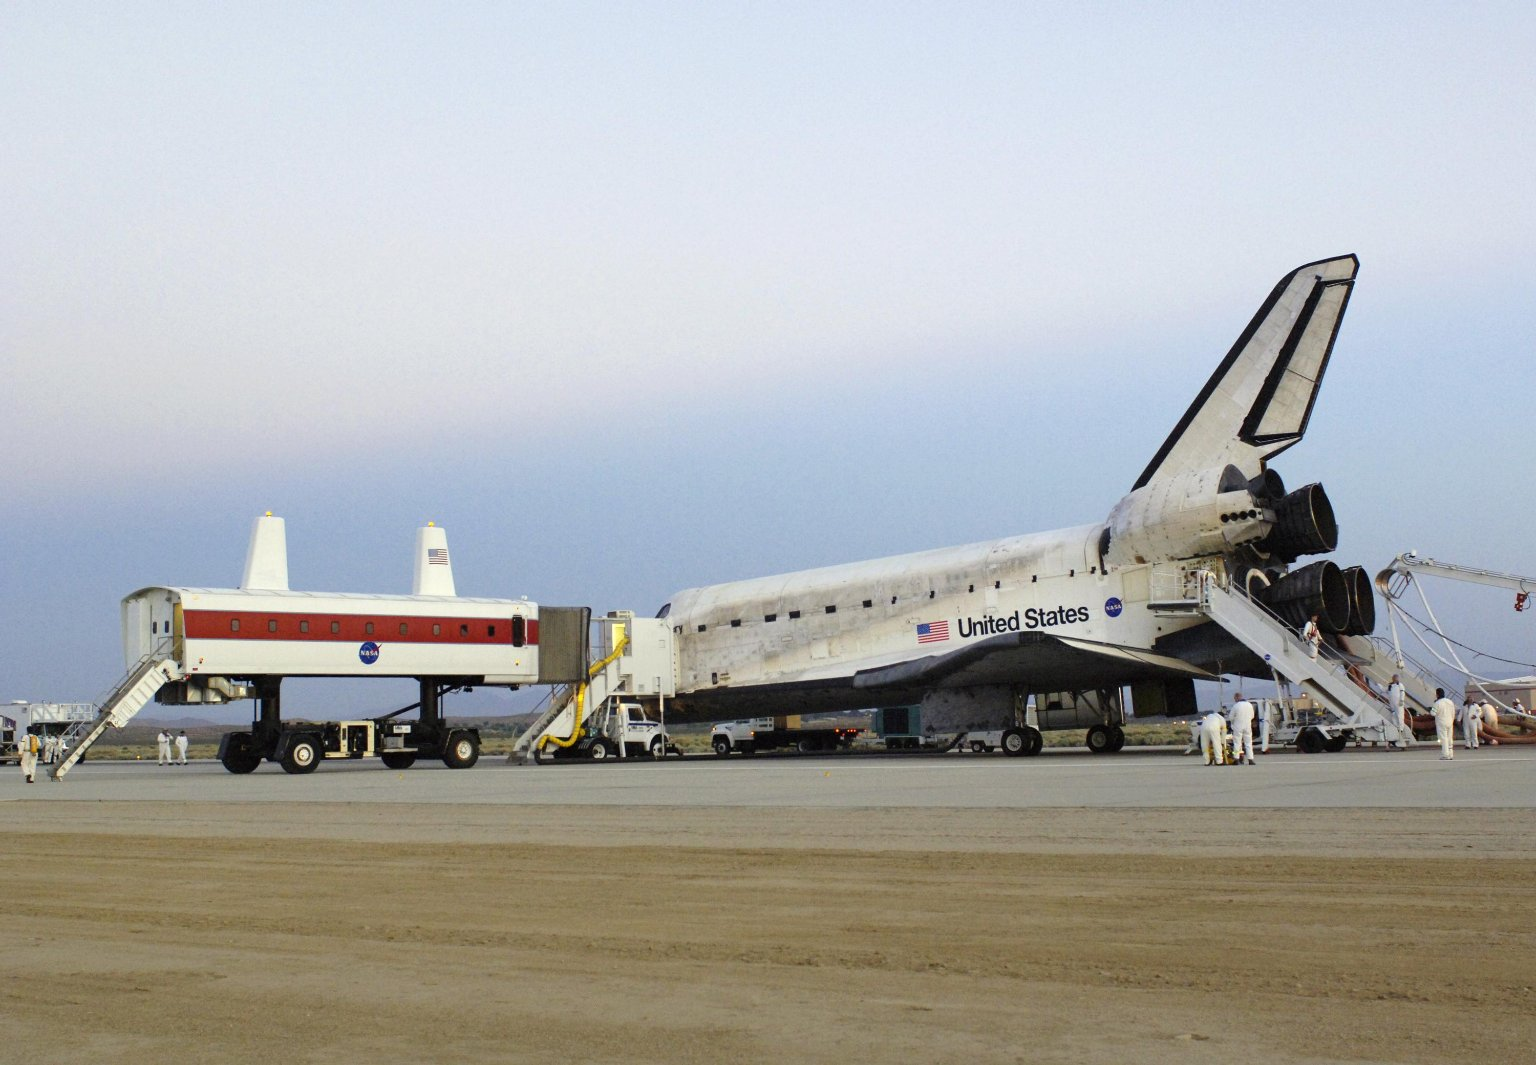 NASA's Crew Transport Vehicle Pulls Up to the Shuttle Discovery.